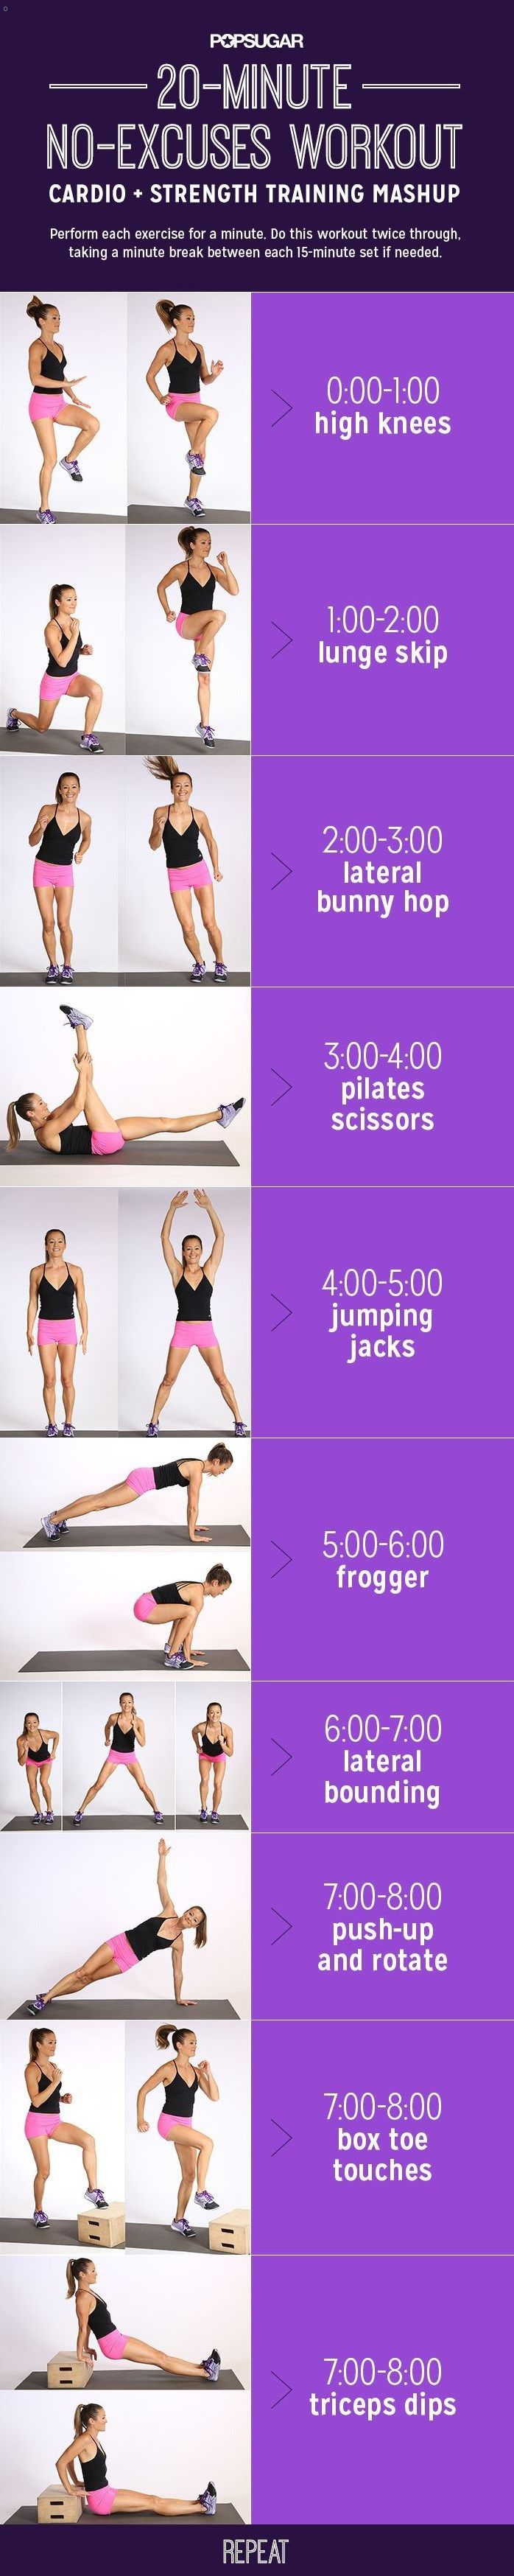 Supply workout for slimmer arms in 6 weeks. We truly like these exercises so Id probably do them :) g